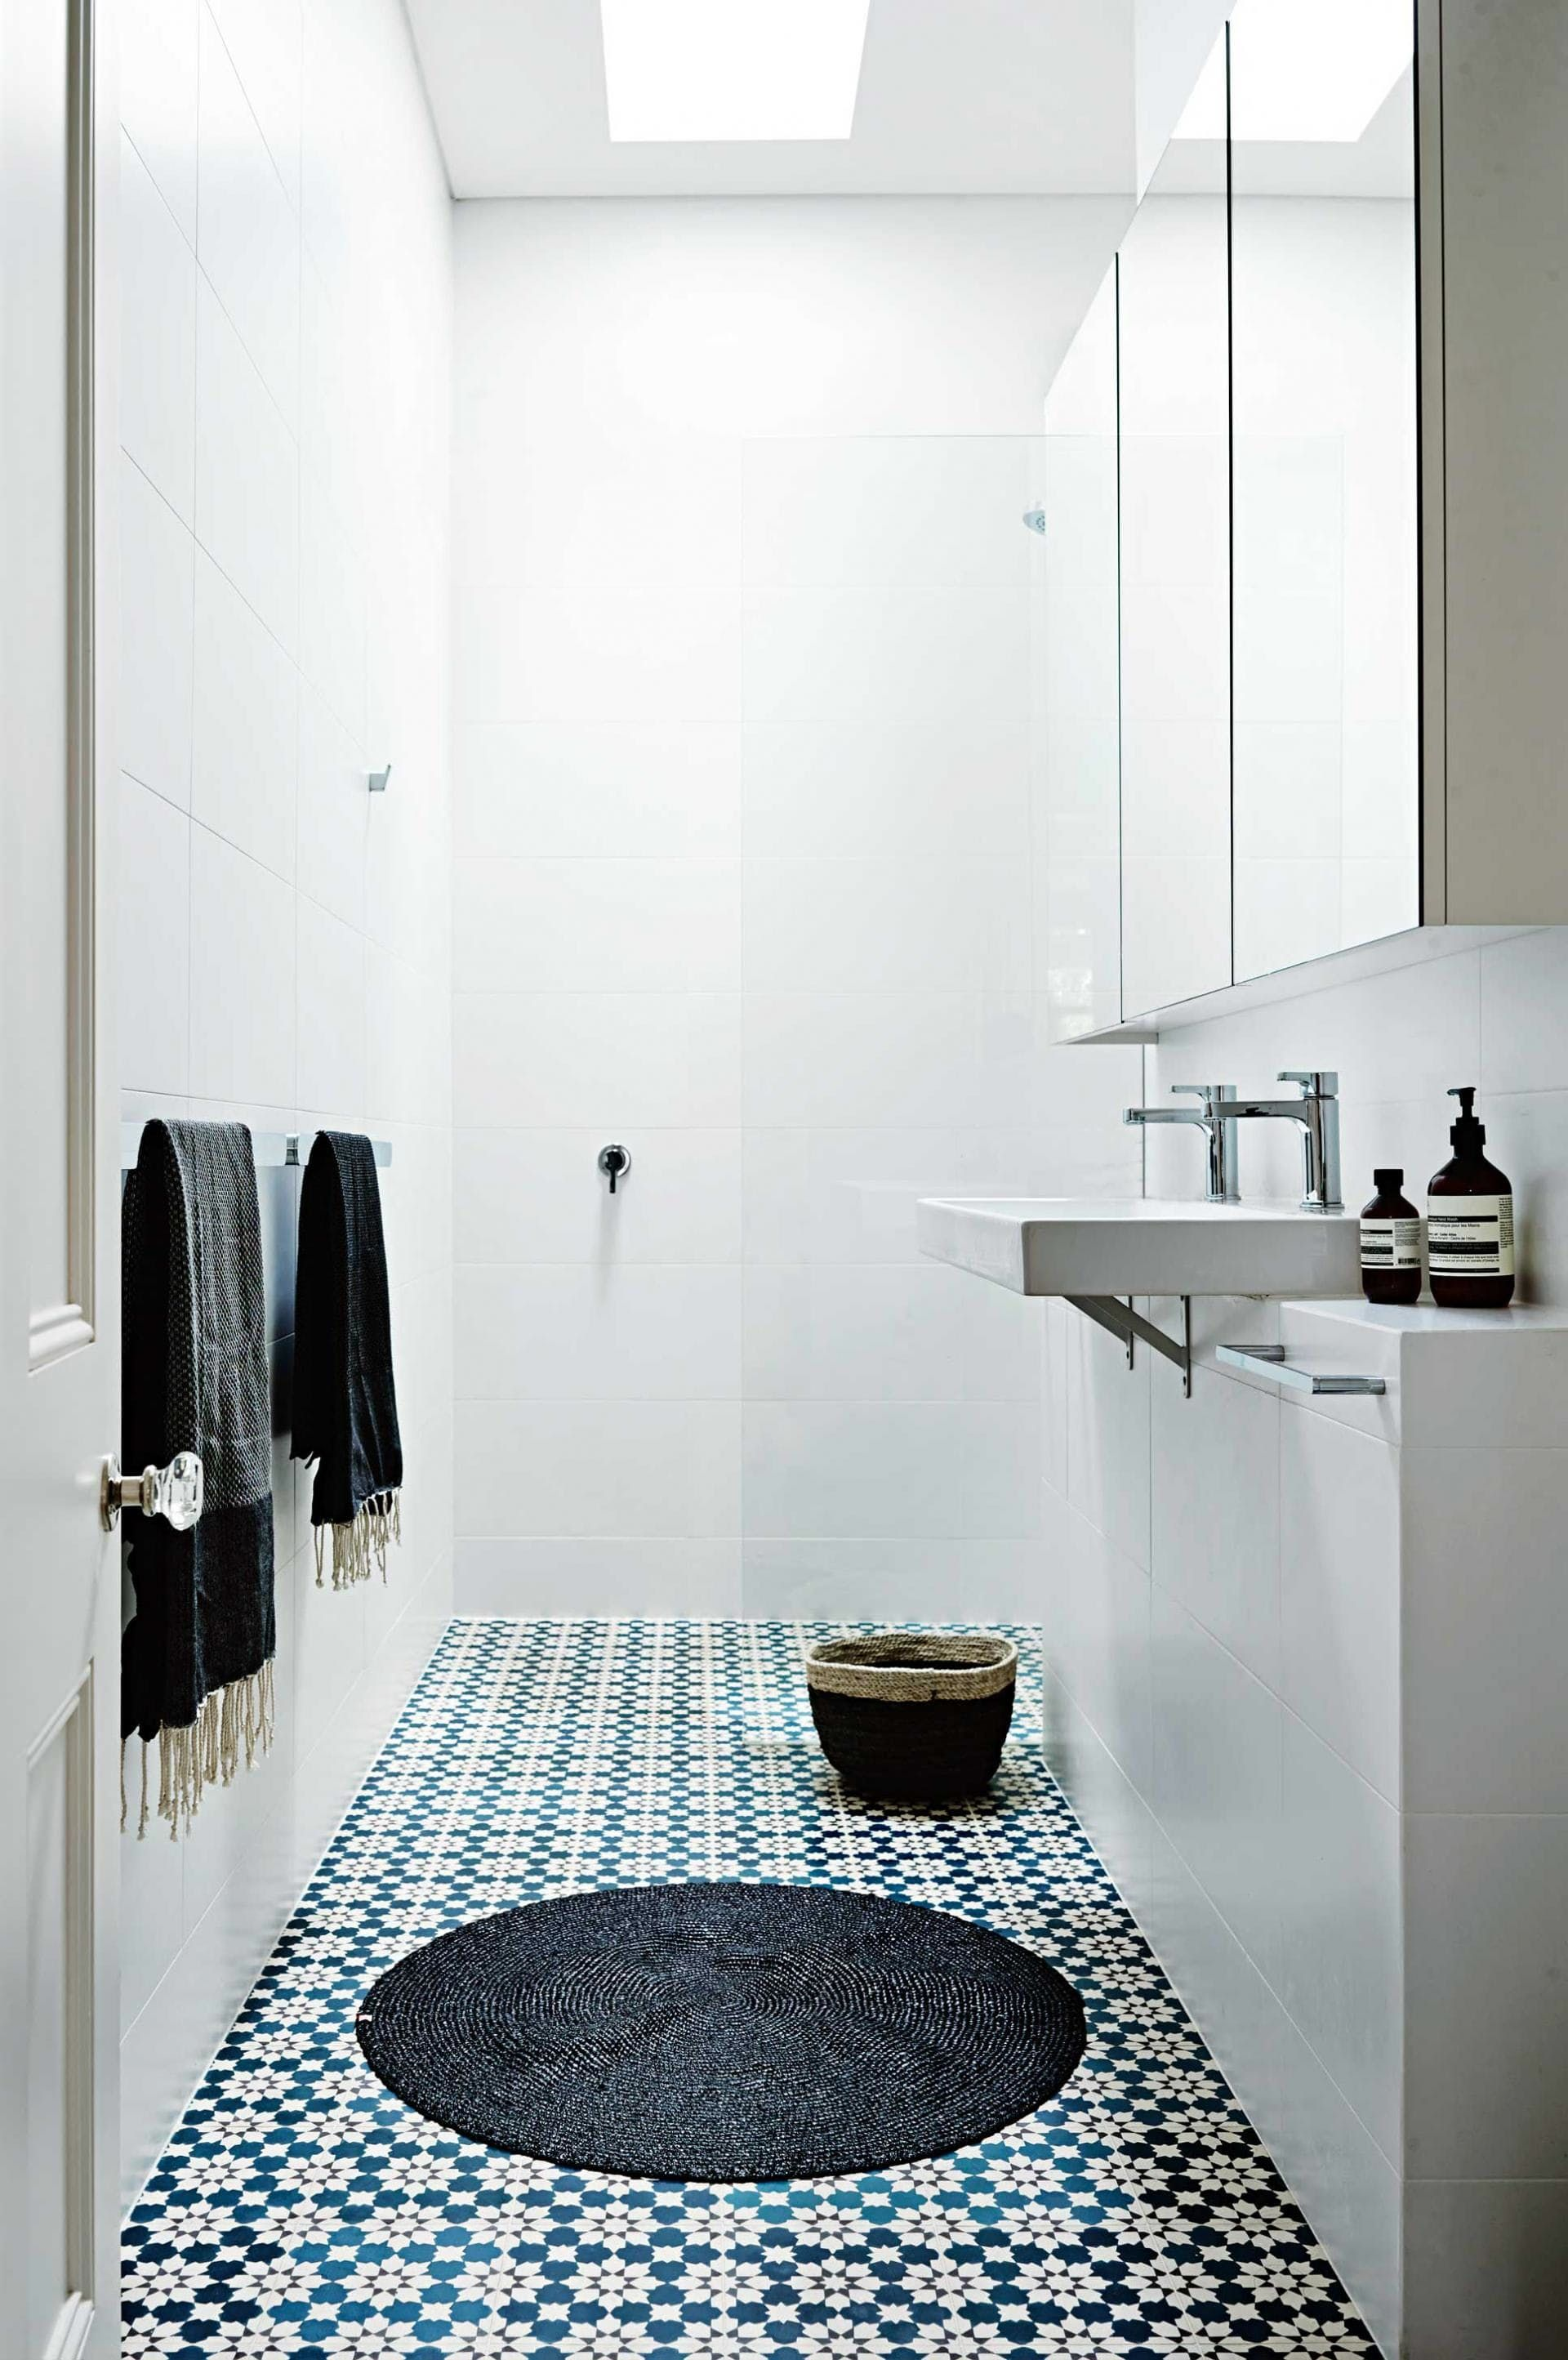 Stylish Remodeling Ideas for Small Bathrooms | Small bathroom, Tile ...